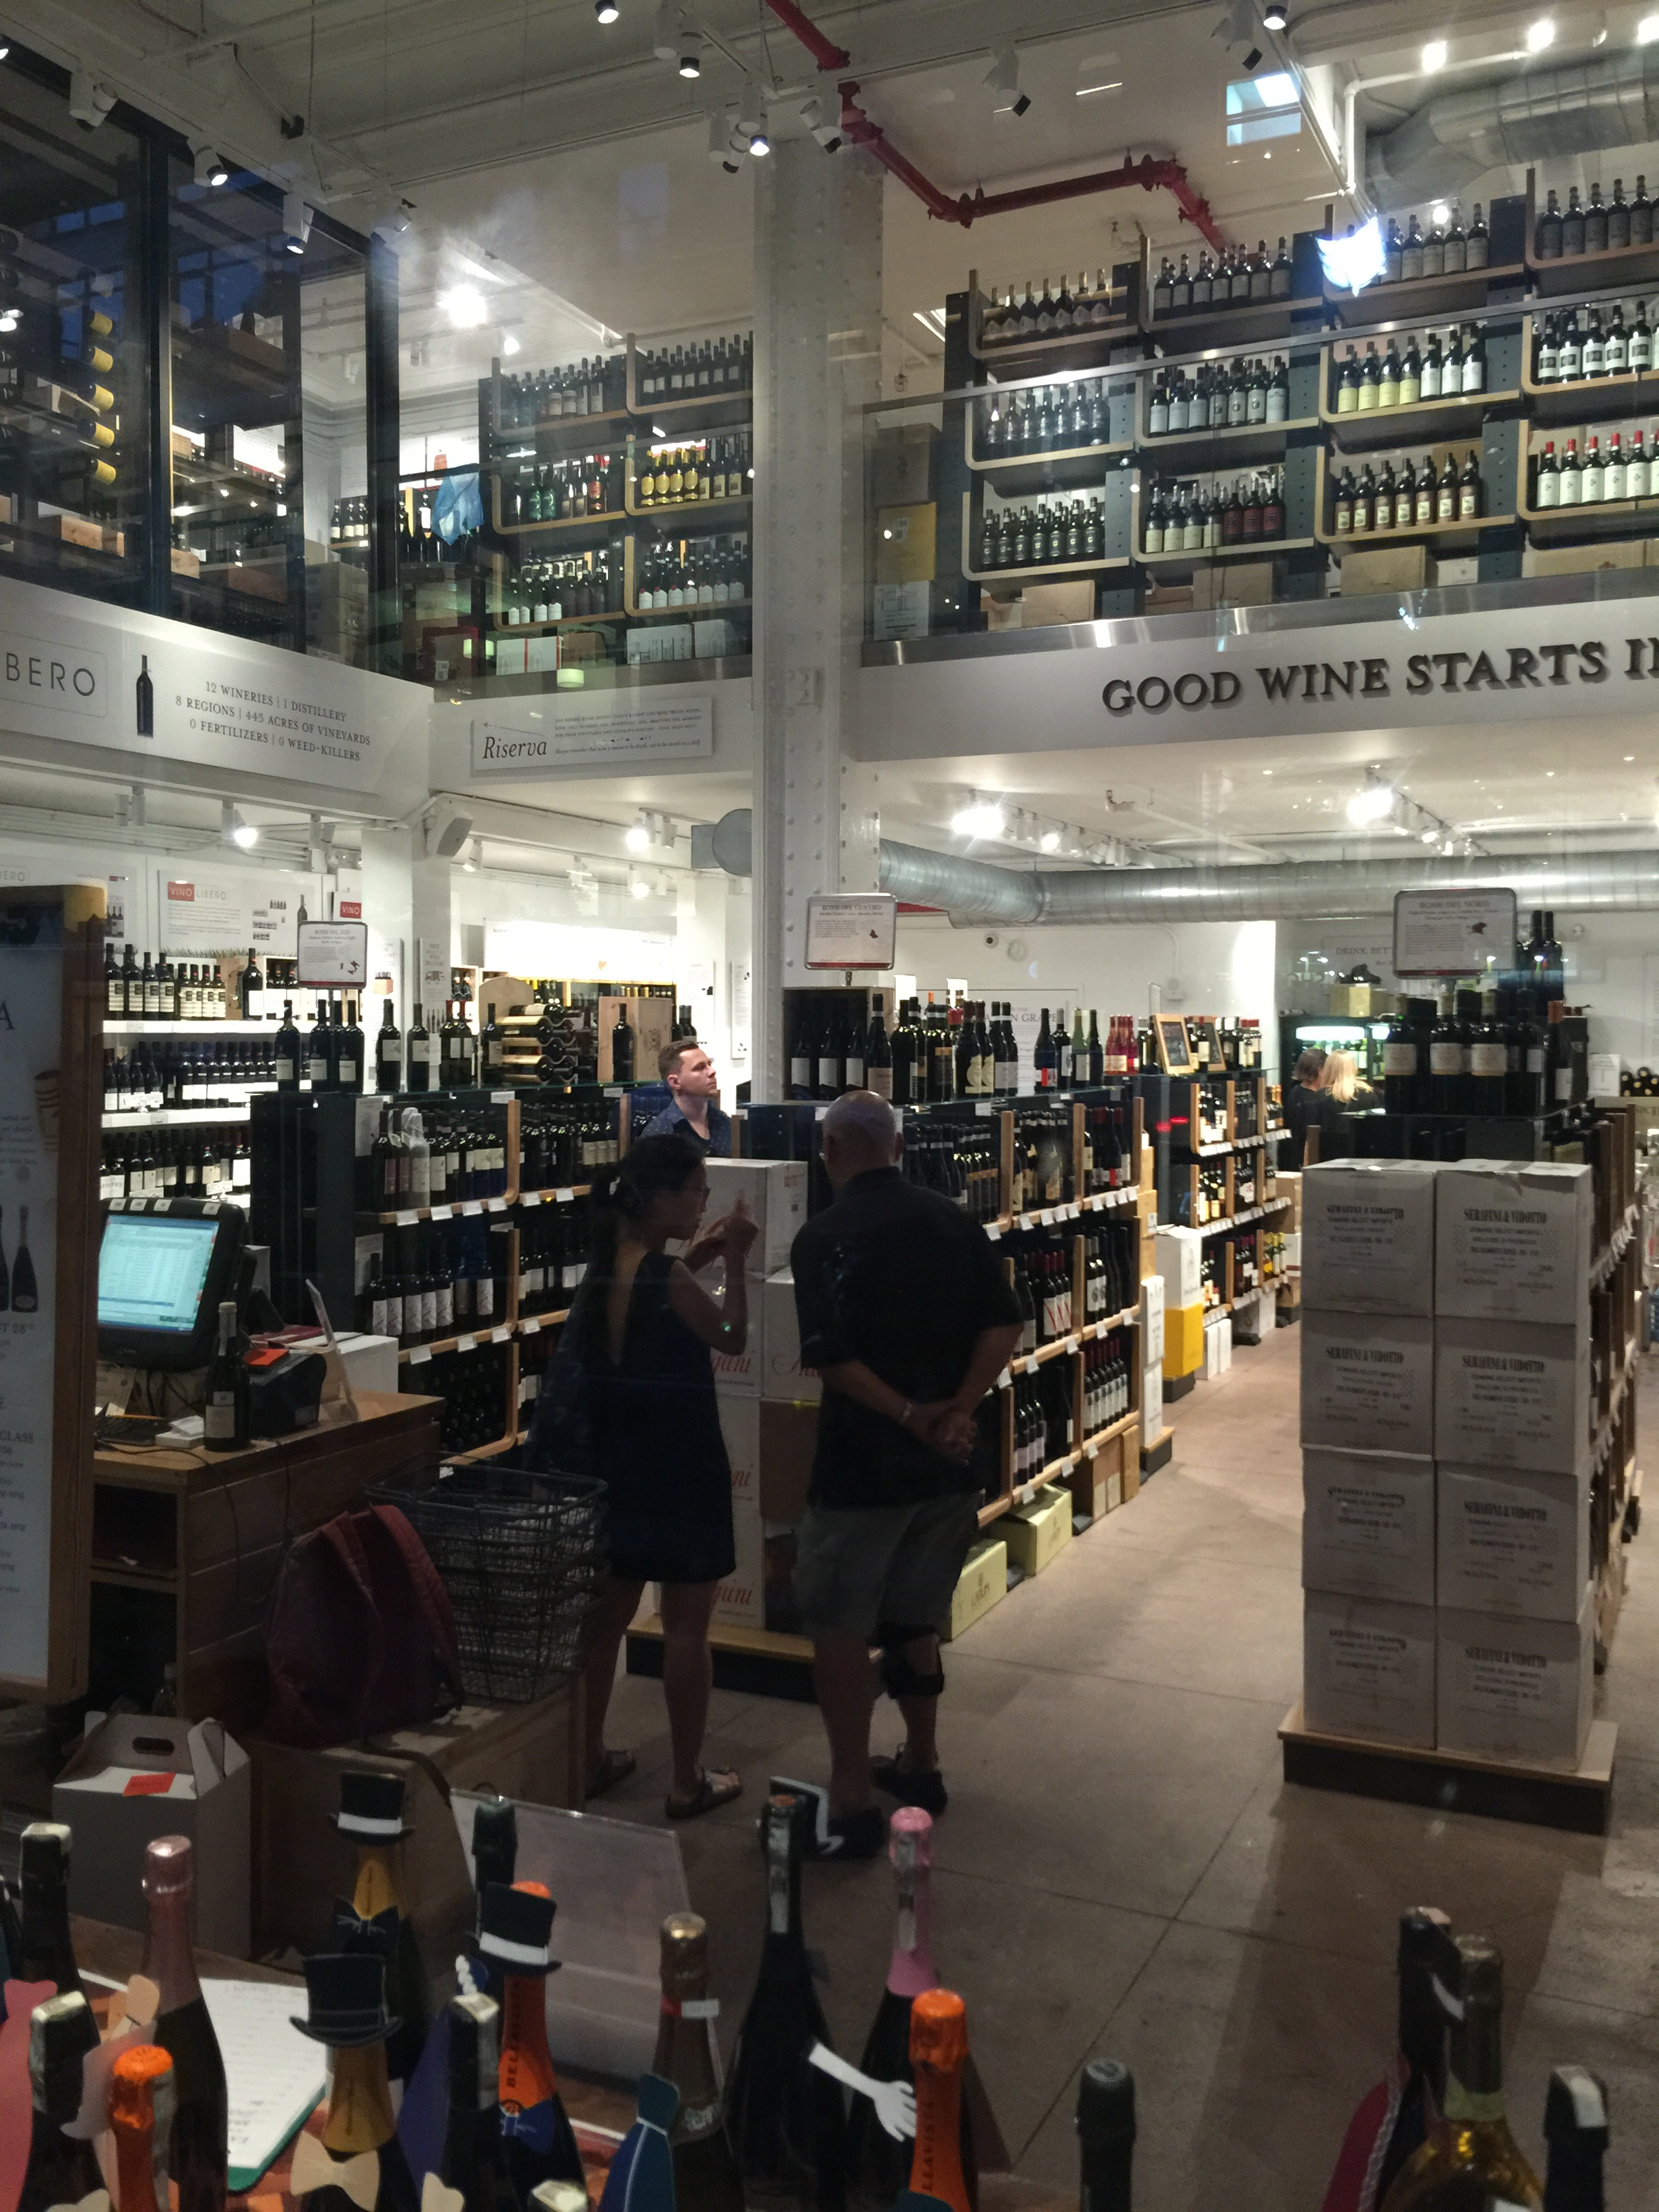 Wine store at Eataly.